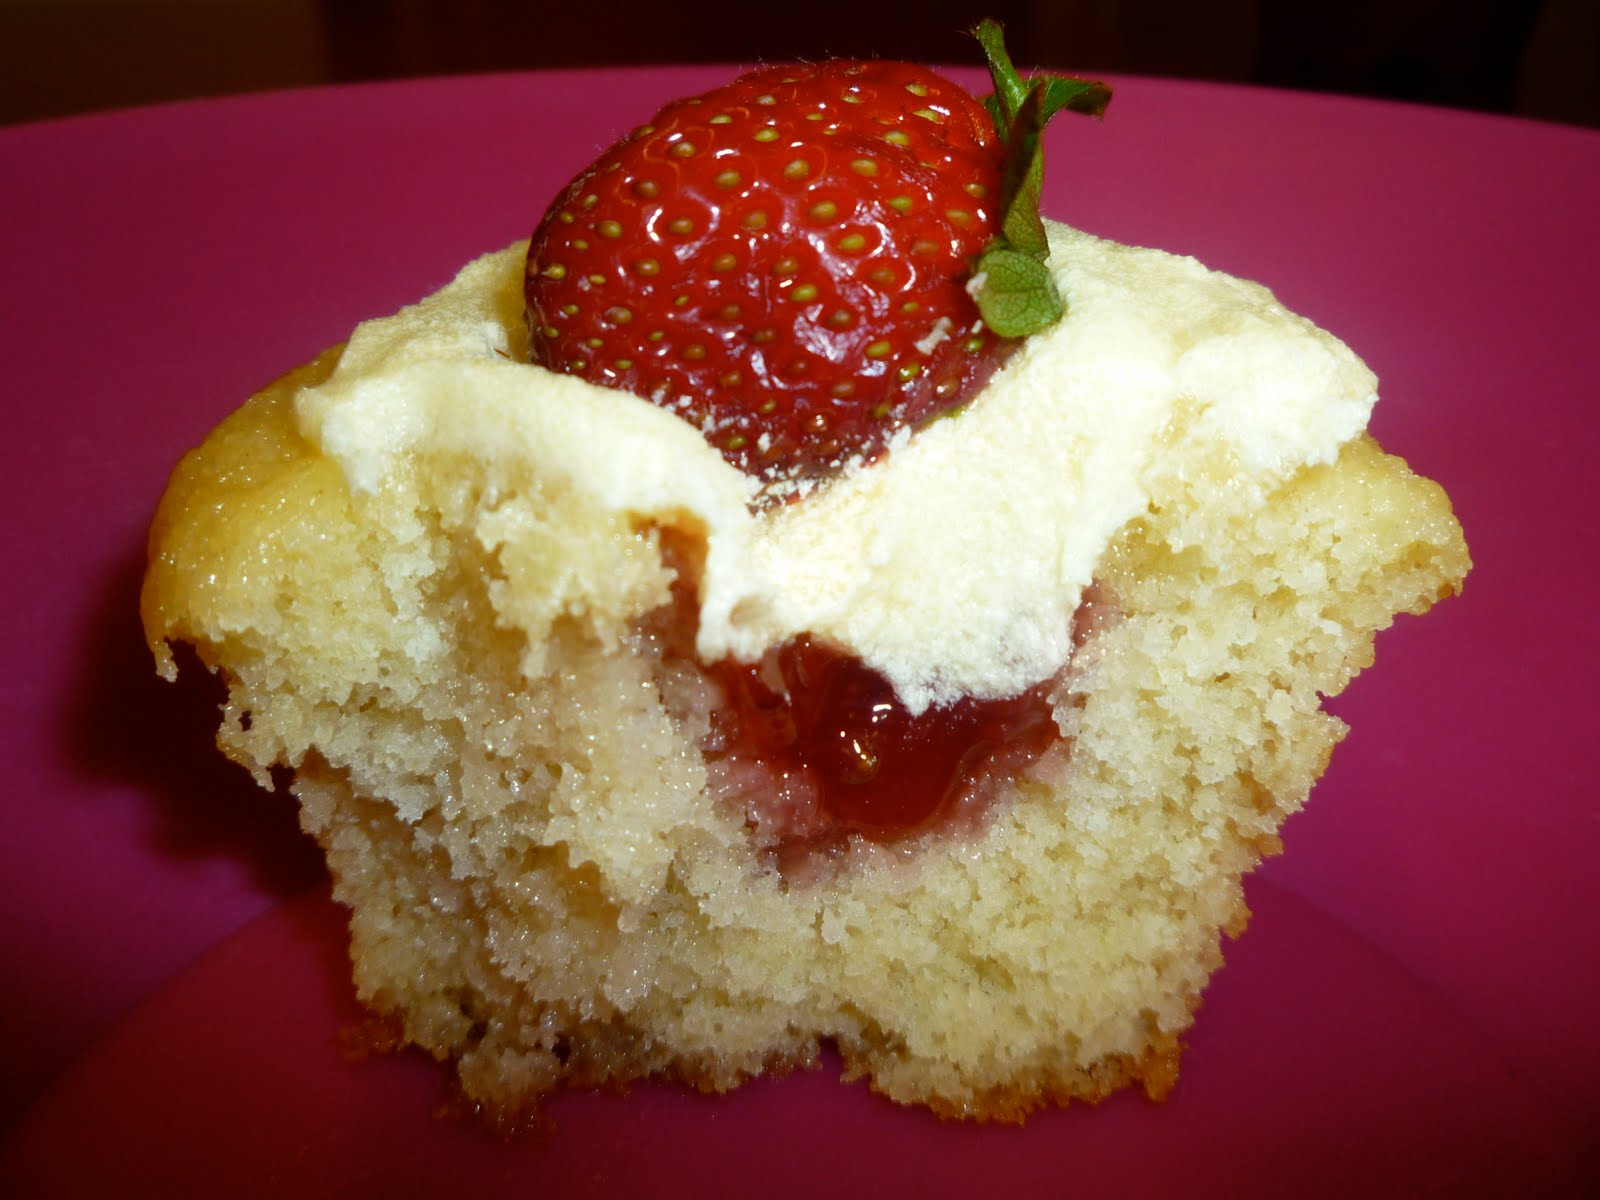 Strawberry Cupcakes With Filling